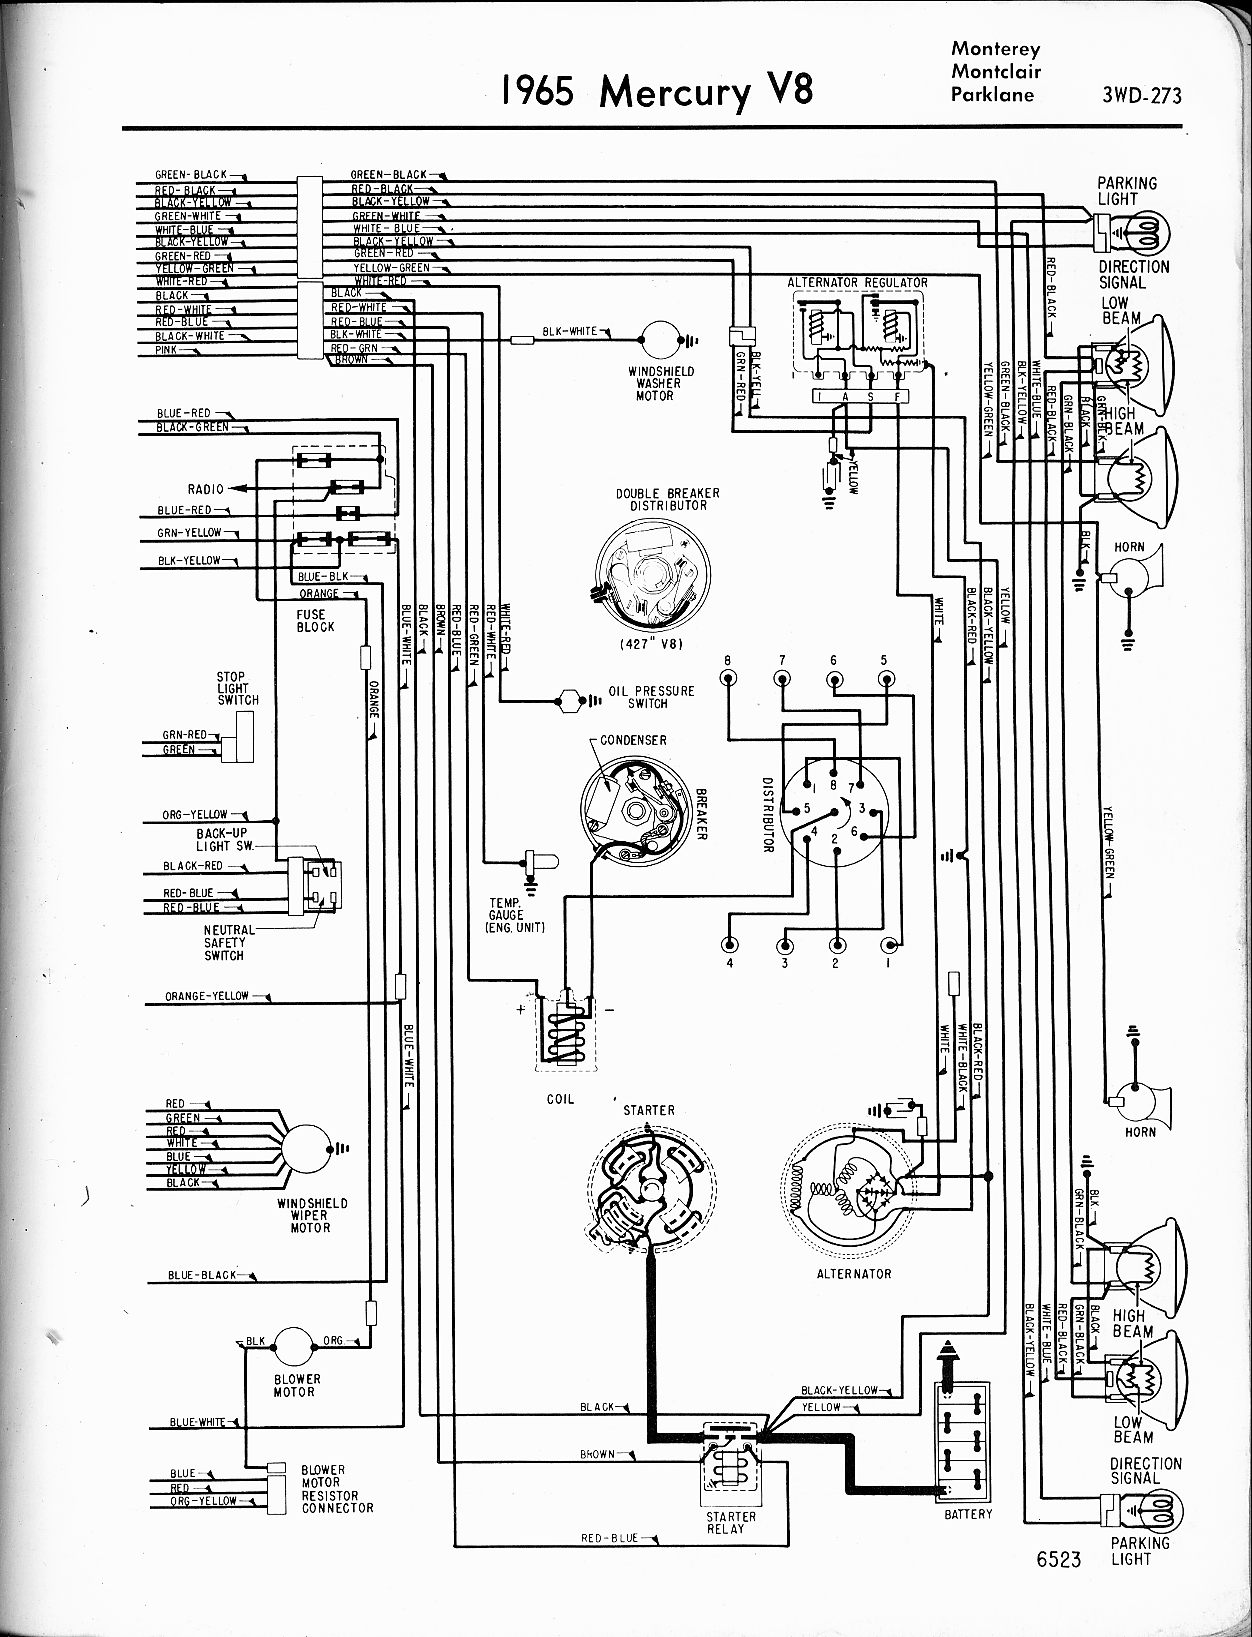 DIAGRAM] 1996 Cougar Wiring Diagrams FULL Version HD Quality Wiring Diagrams  - OUTLETDIAGRAM.LADEPOSIZIONEMISTERI.IT | 71 Mercury Cougar Wiring Diagram |  | Diagram Database